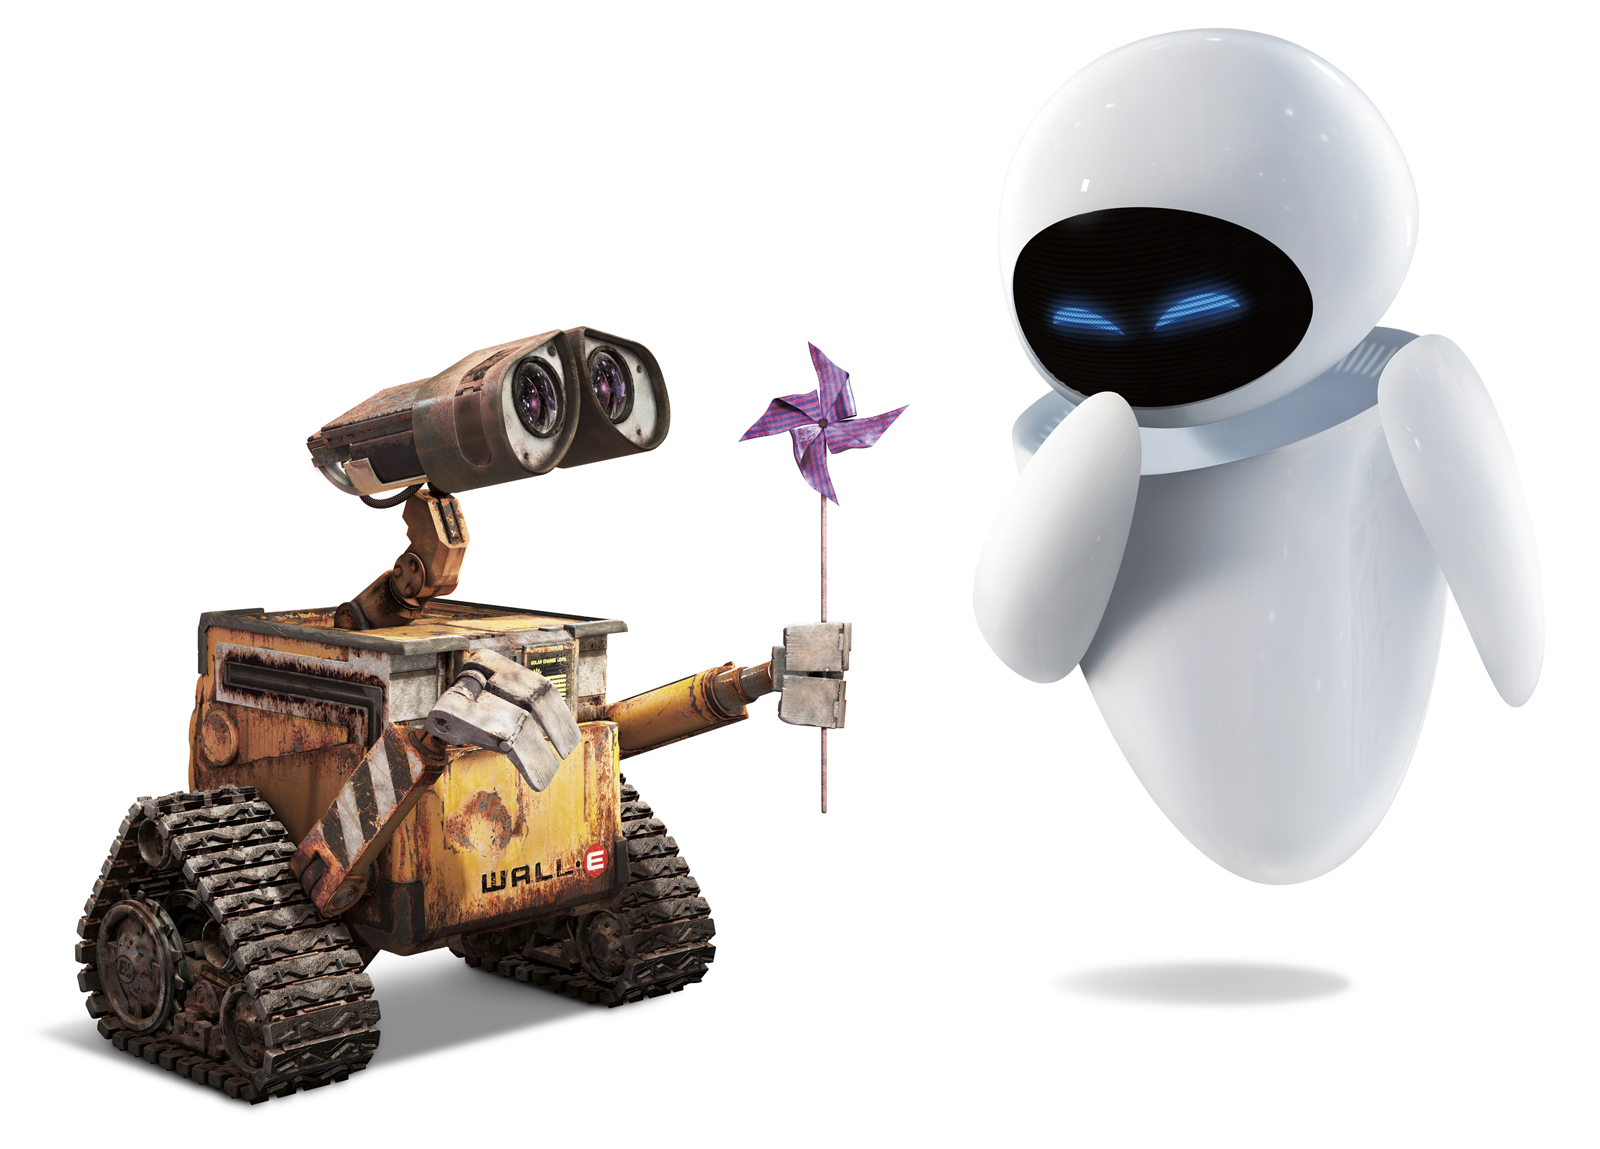 http://1.bp.blogspot.com/-ljfq5-mTBlE/Tnx1377IlRI/AAAAAAAABR4/tsQ9X4xSCGw/s1600/Wall_E_Eve_Pixar_Anime_3D_HD_Desktop_Background_Vvallpaper.net.jpg